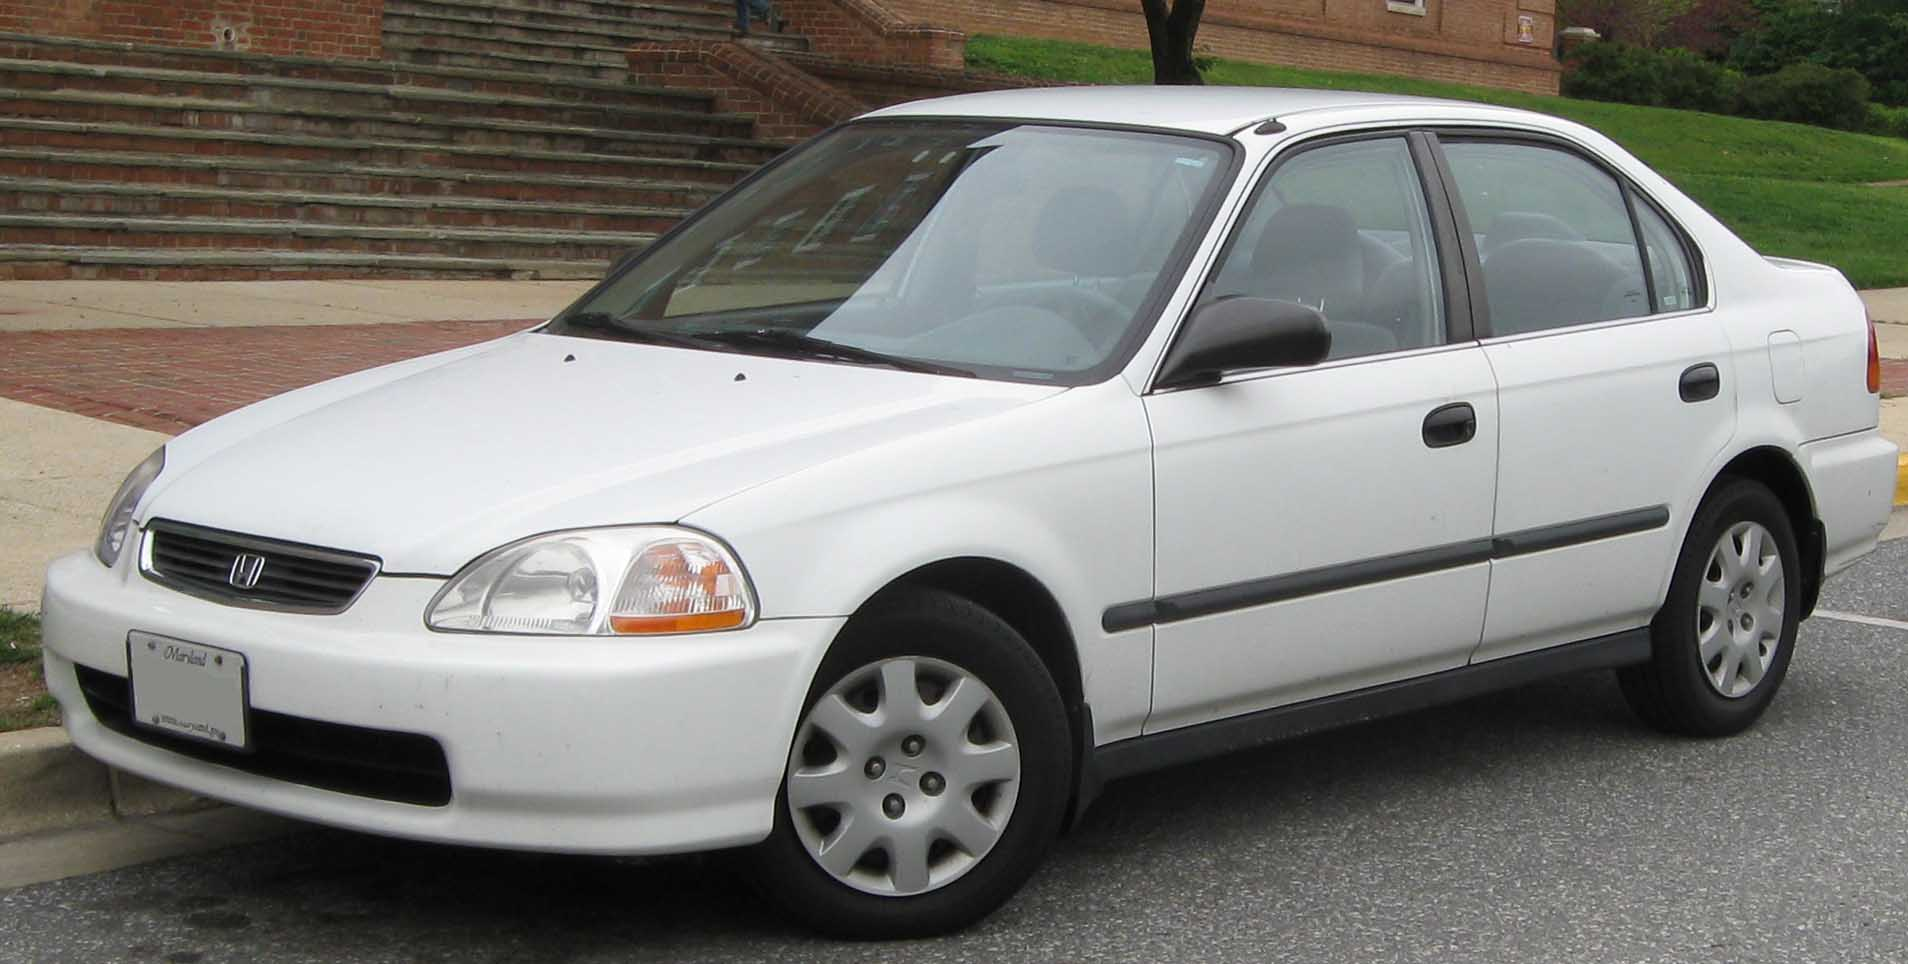 96 98 Honda Civic LX Sedan